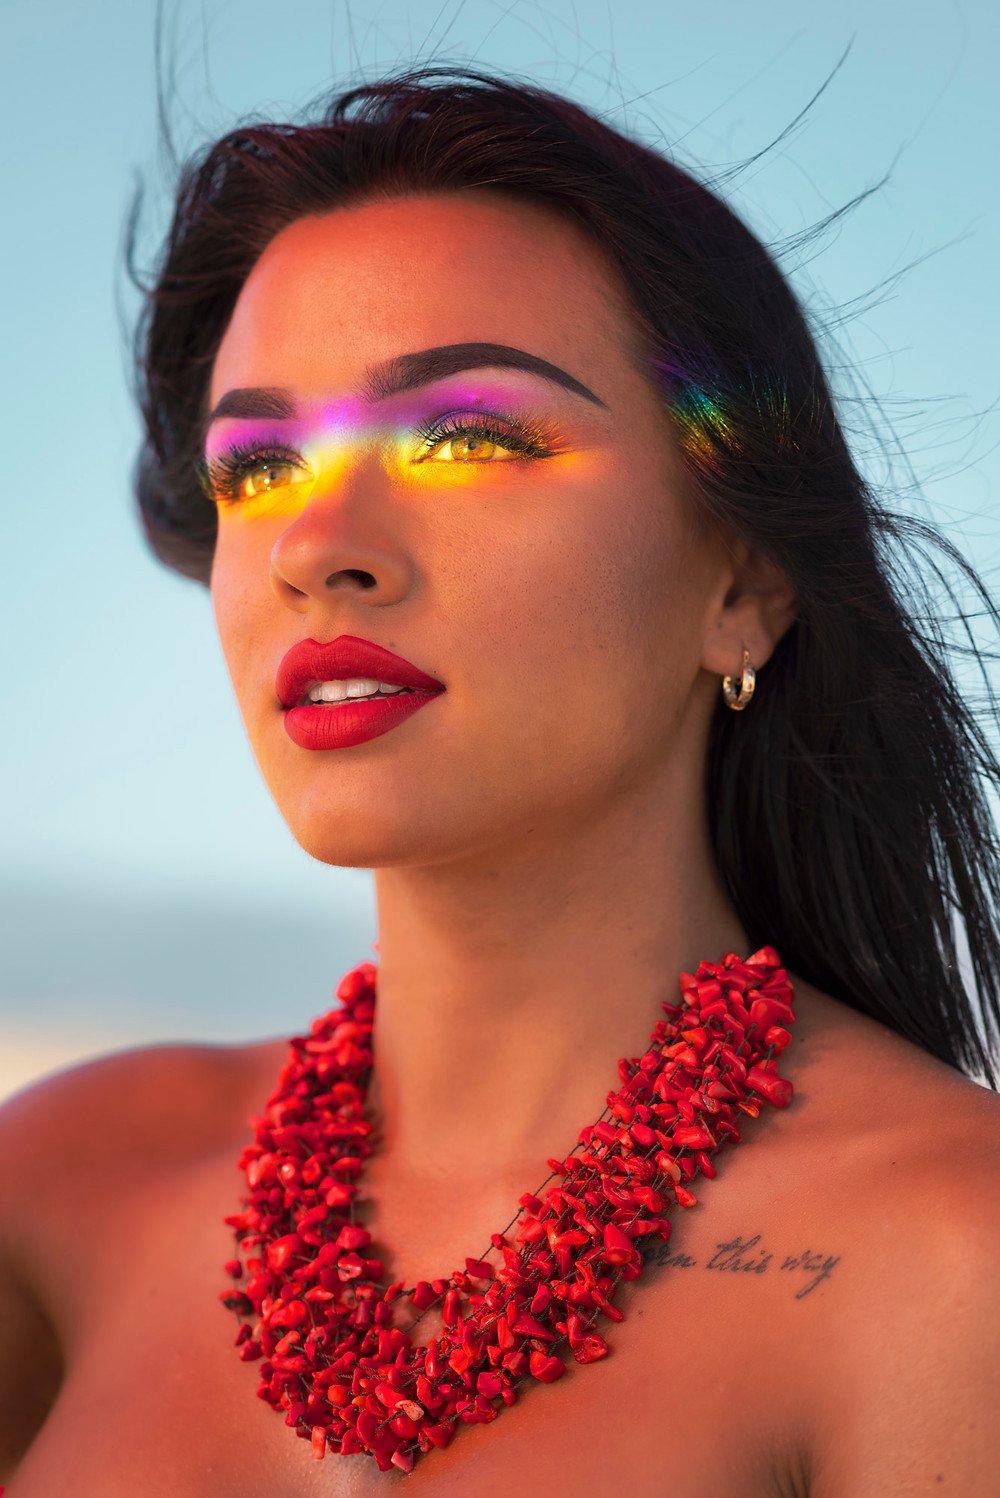 Rainbow colours shinning in the models face. The perfect beauty portrait by Ben Welsh.